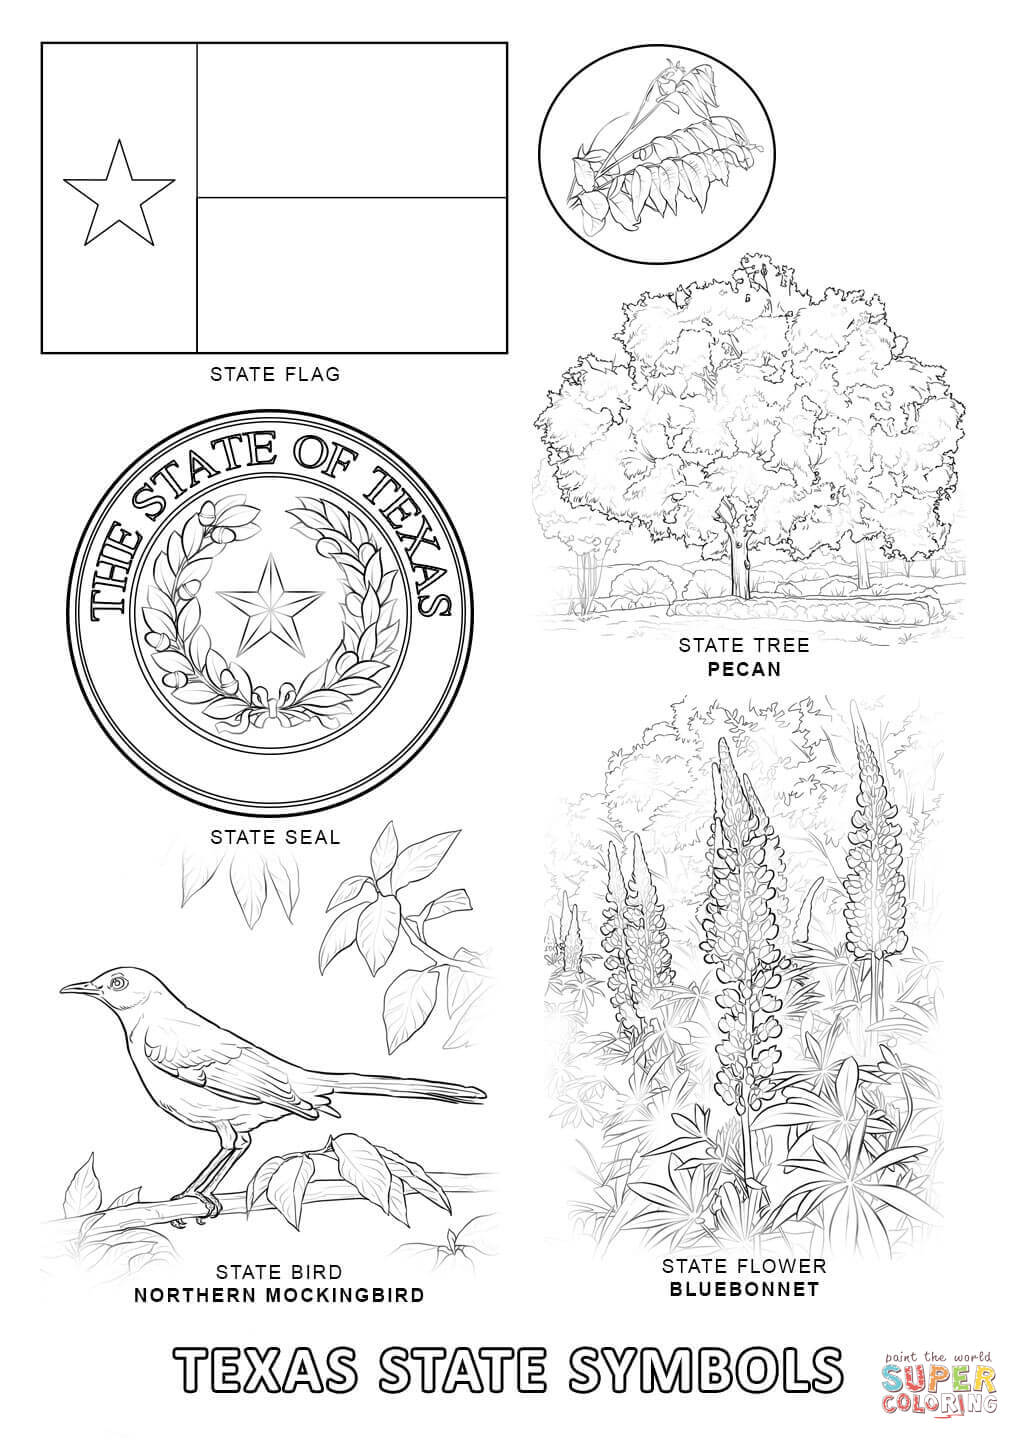 Texas State Symbols coloring page | Free Printable Coloring Pages